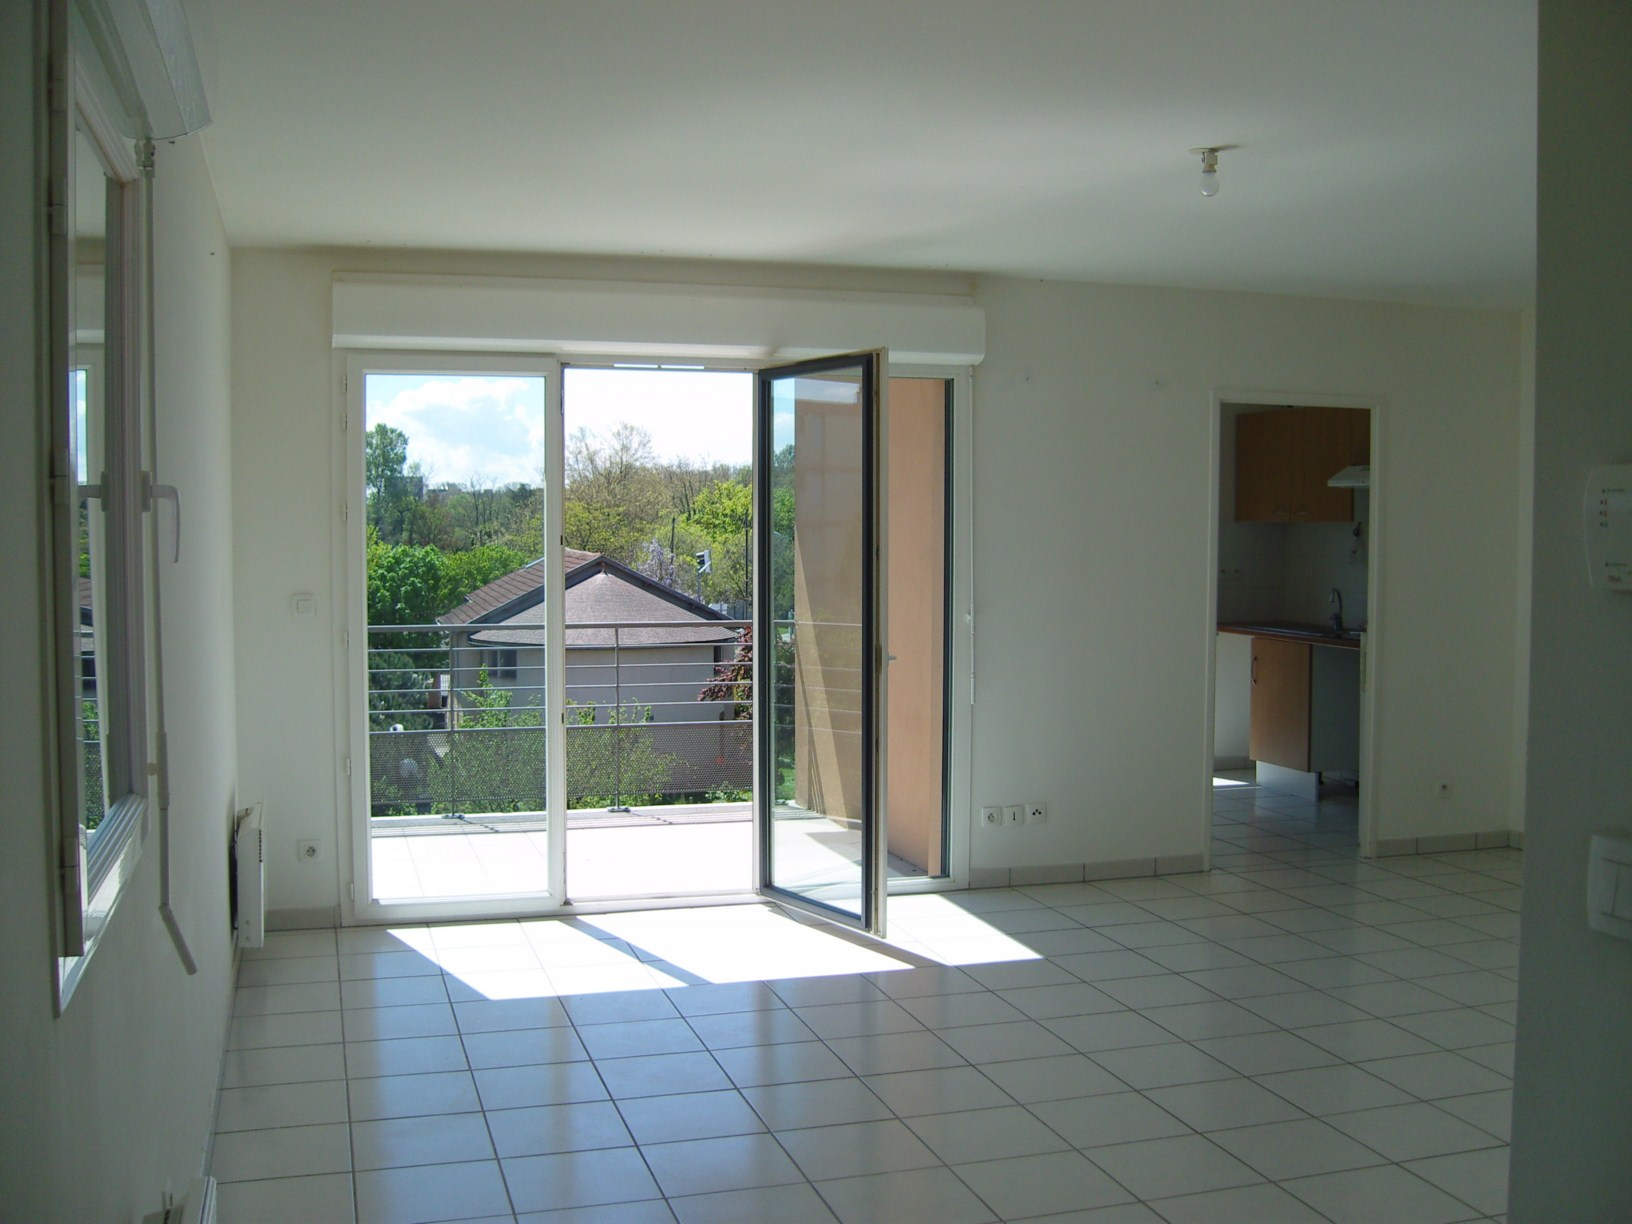 Annonce location appartement toulouse 31300 68 m 705 for Location garage toulouse 31300